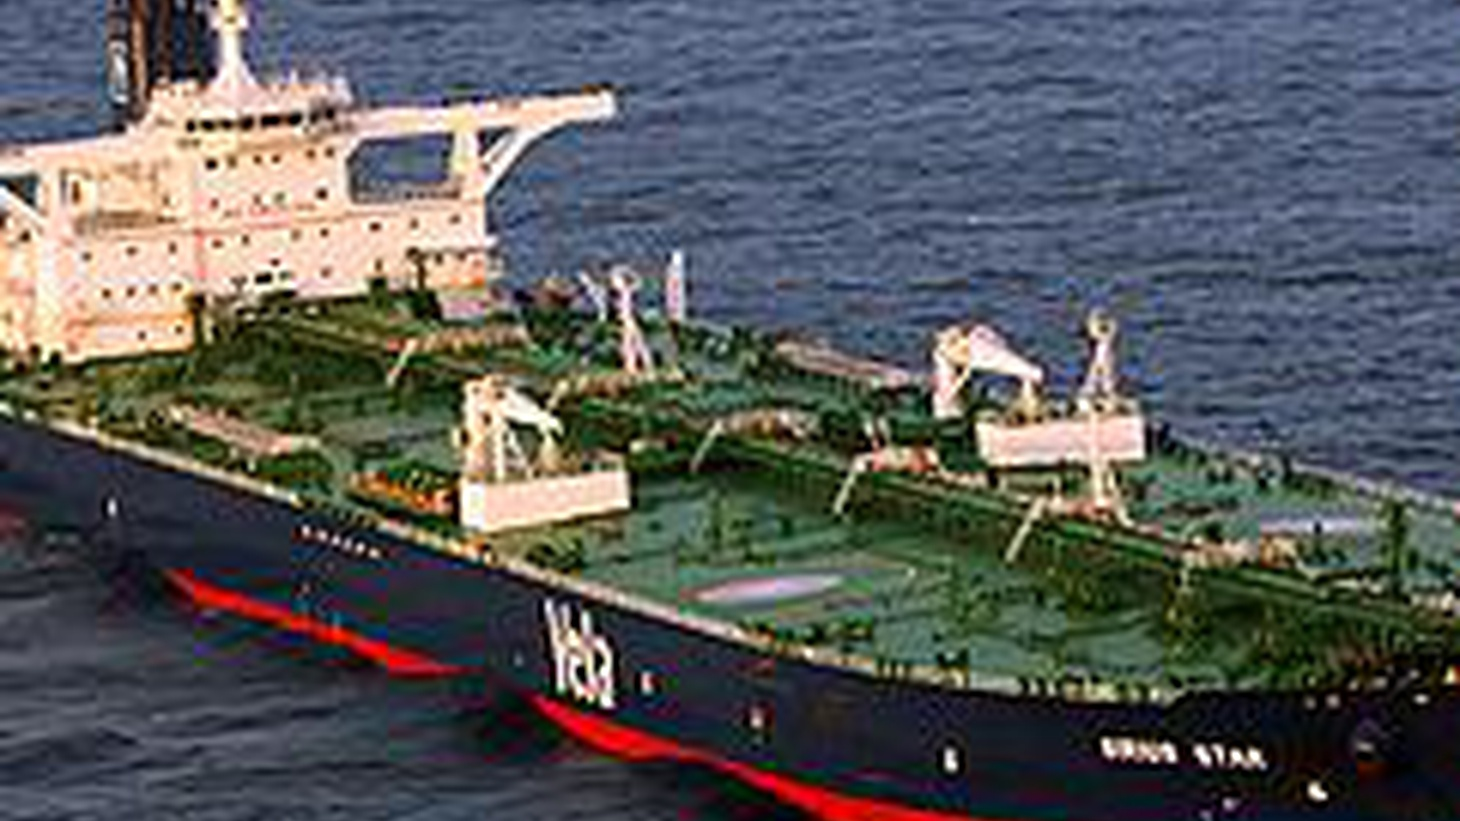 A Saudi freighter the size of an aircraft carrier is being held by a small band of Somali pirates. With a load of two million barrels of crude oil and a crew of twenty-five, it's a valuable hostage for the pirates and a potential environmental disaster if negotiations fail and an oil spill occurs. Guest host Sara Terry explores what's happened to millions of dollars in ransom paid for the release of other vessels, who the pirates are and why they aren't being caught by naval forces.